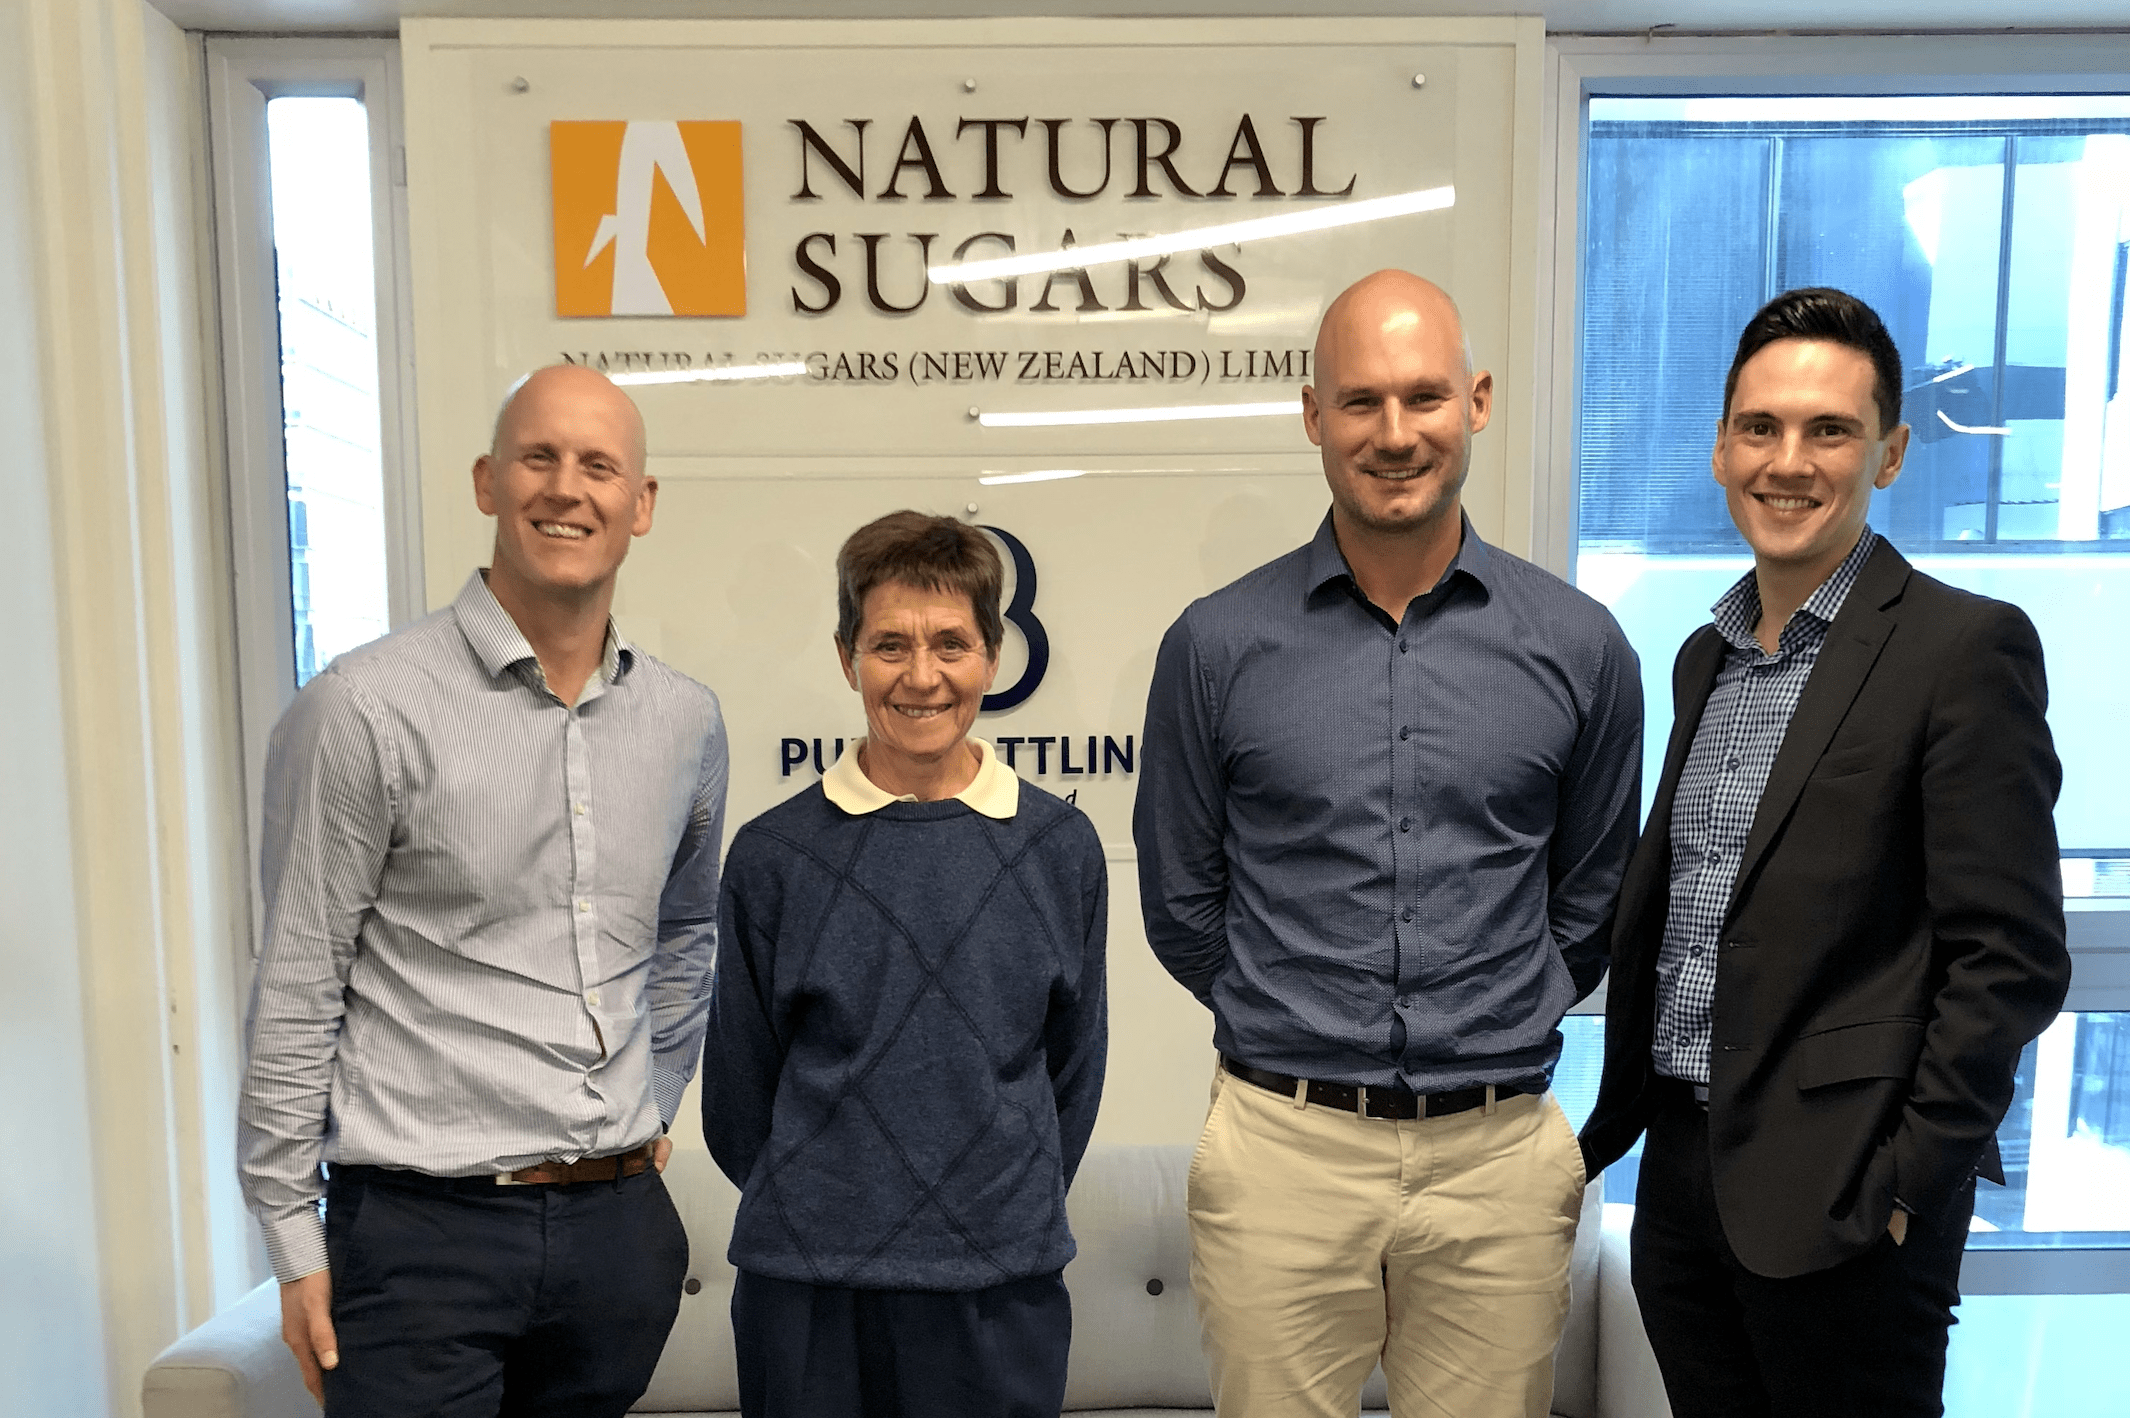 PICTURED  (from left to right): Natural Sugars – Karl Carey (Commercial Manager), Peta Logan (Key Account Manager), Hamish Gordon (MD), Nutrition Innovation's – Andrew Higgs (Country Manager - ANZ)